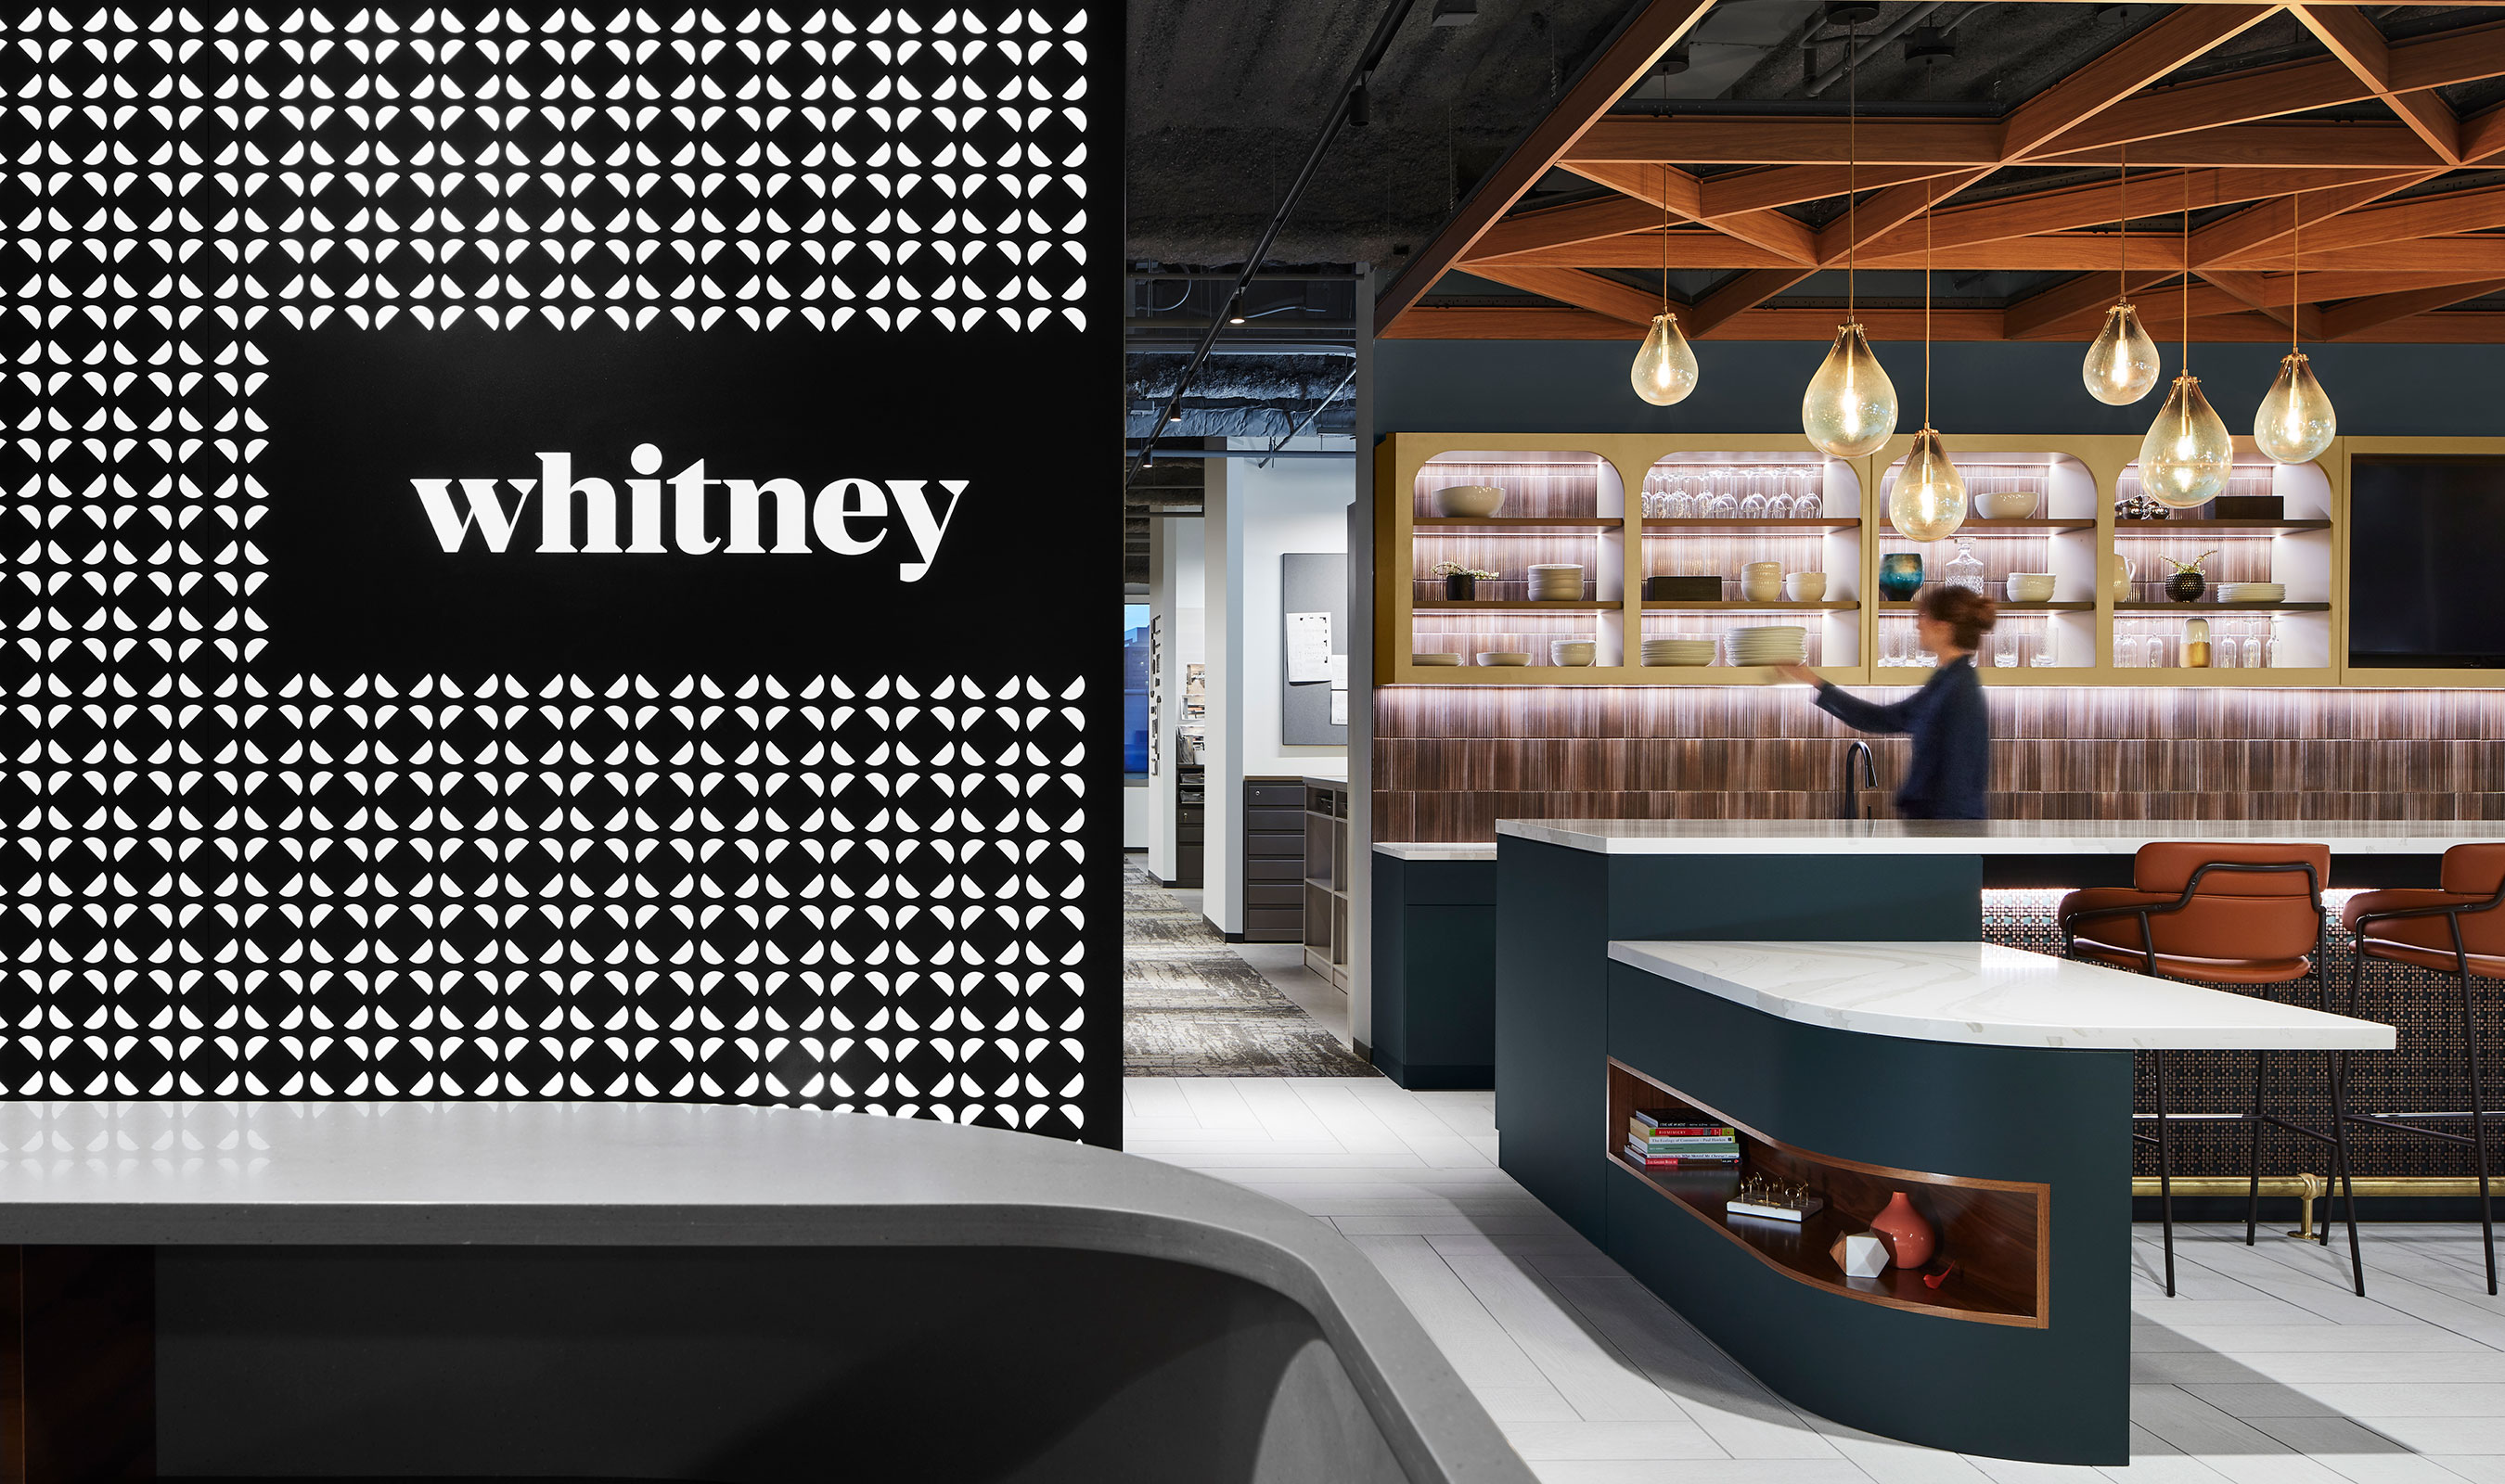 The unique styling of Banker Wire's M33-5 lent itself well as bar cladding to the Whitney Architects' work café at their Chicago headquarters.